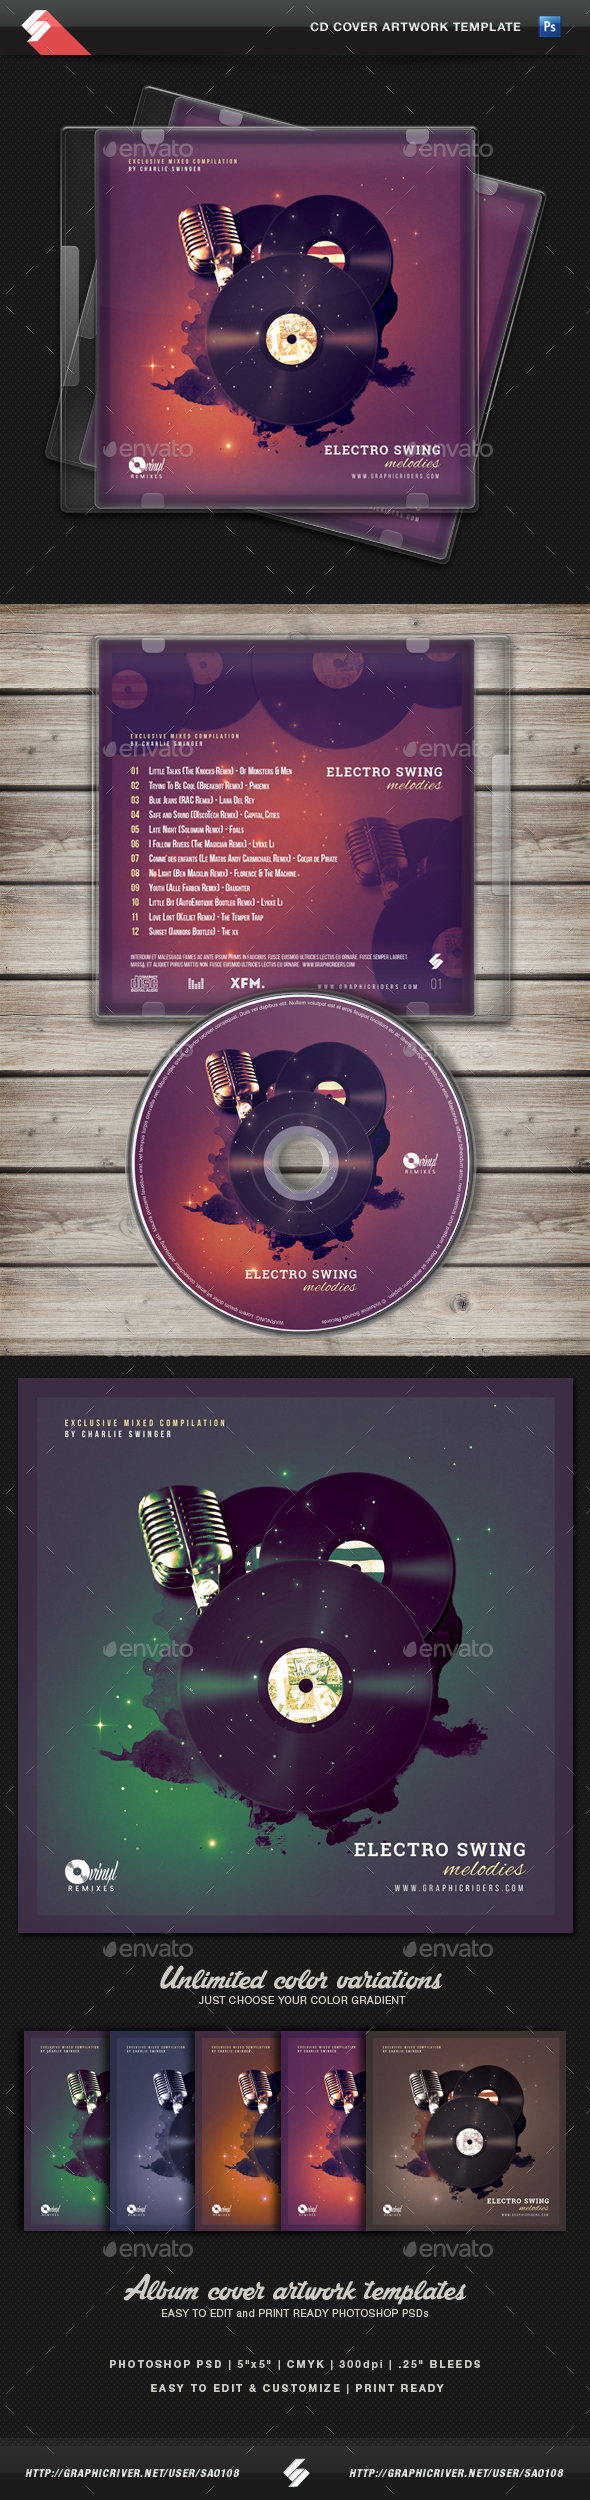 Electro Swing CD Cover Artwork Template - CD & DVD Artwork Print Templates